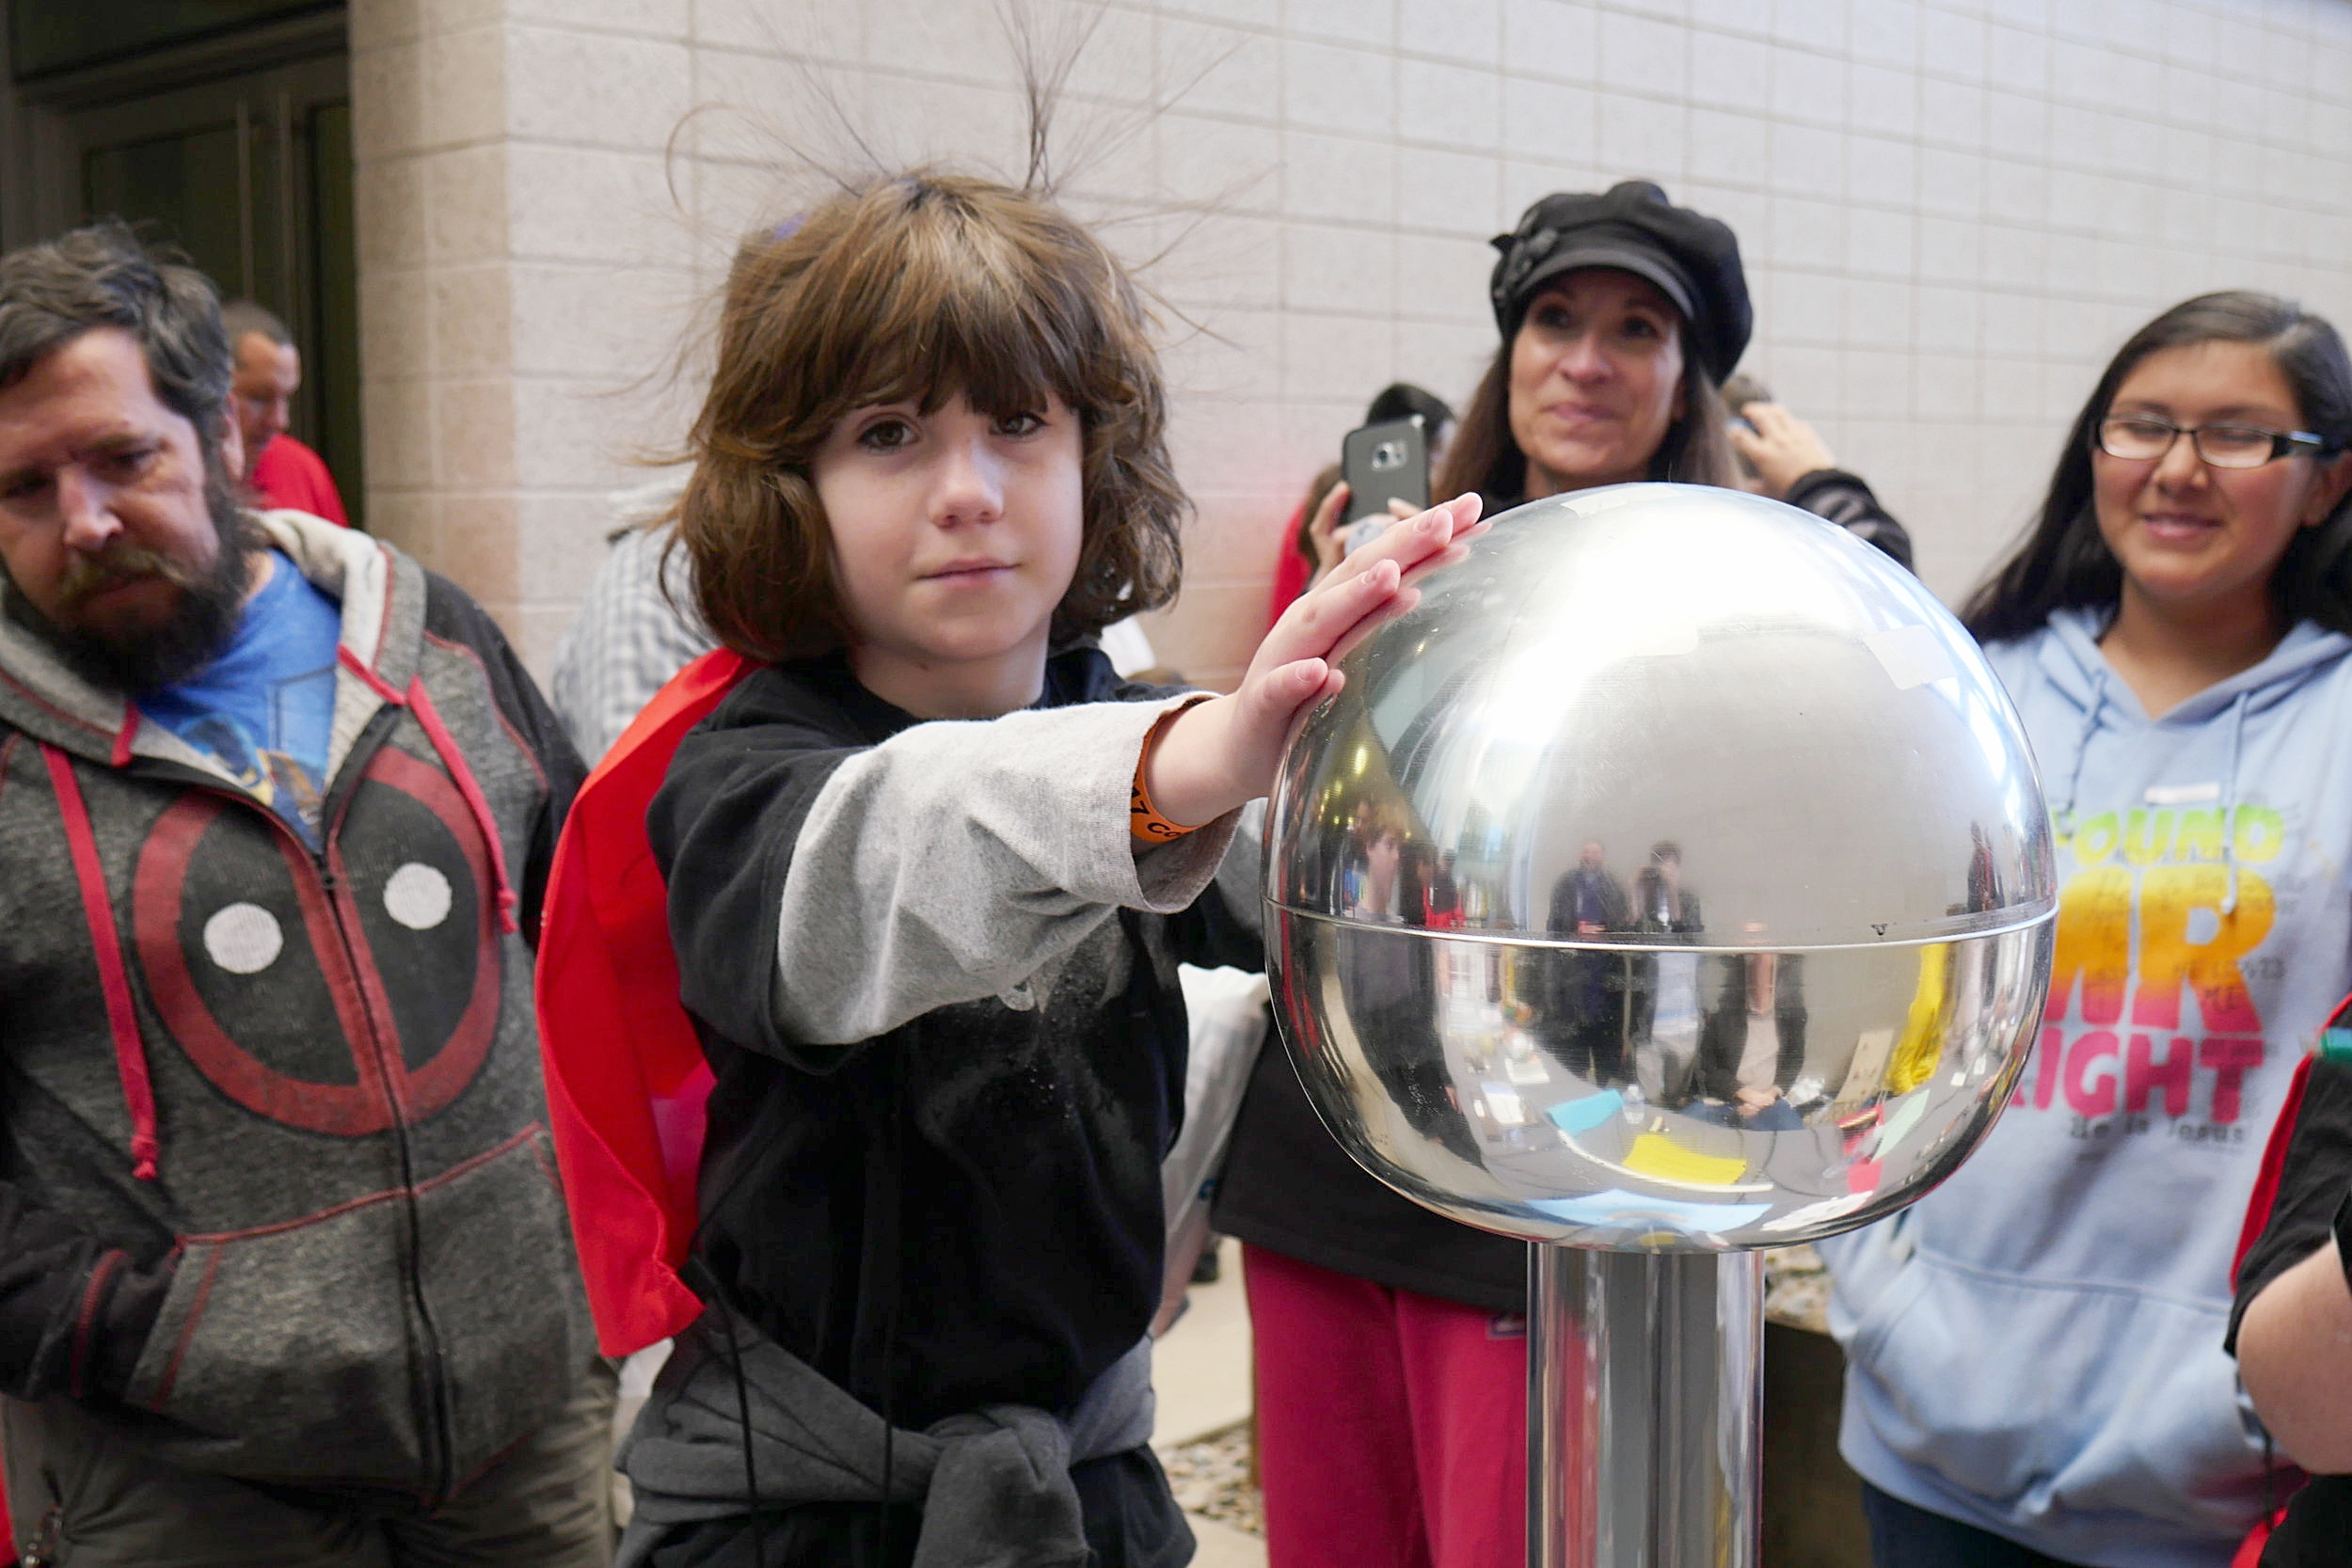 Dillon, 9, discovers the shocking truth about static electricity. (Nicholas Serpa/DD)